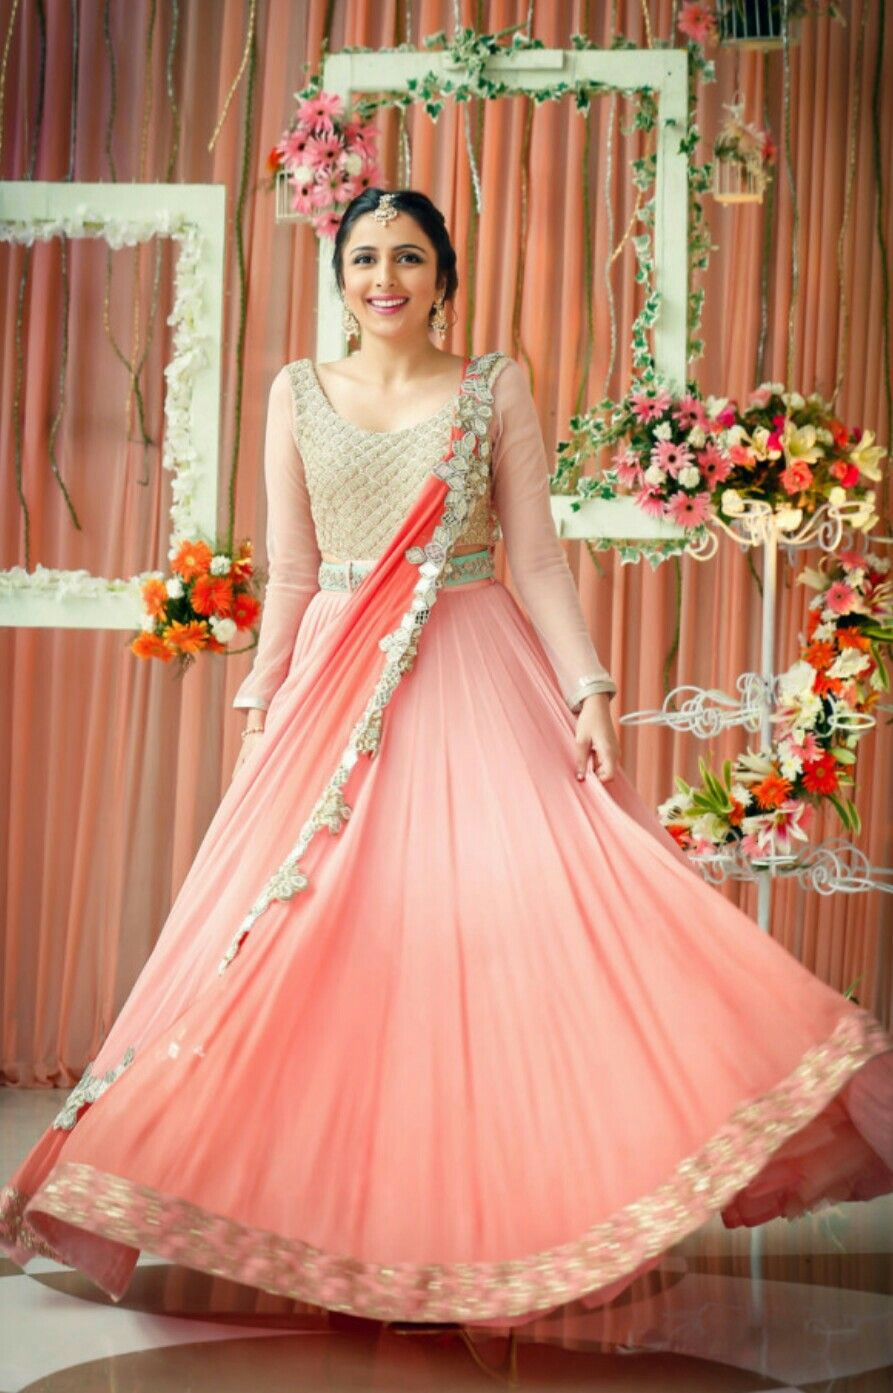 Wear to wedding dresses  Pin by Shruti Sharma on ethnic wear  Pinterest  Ethnic